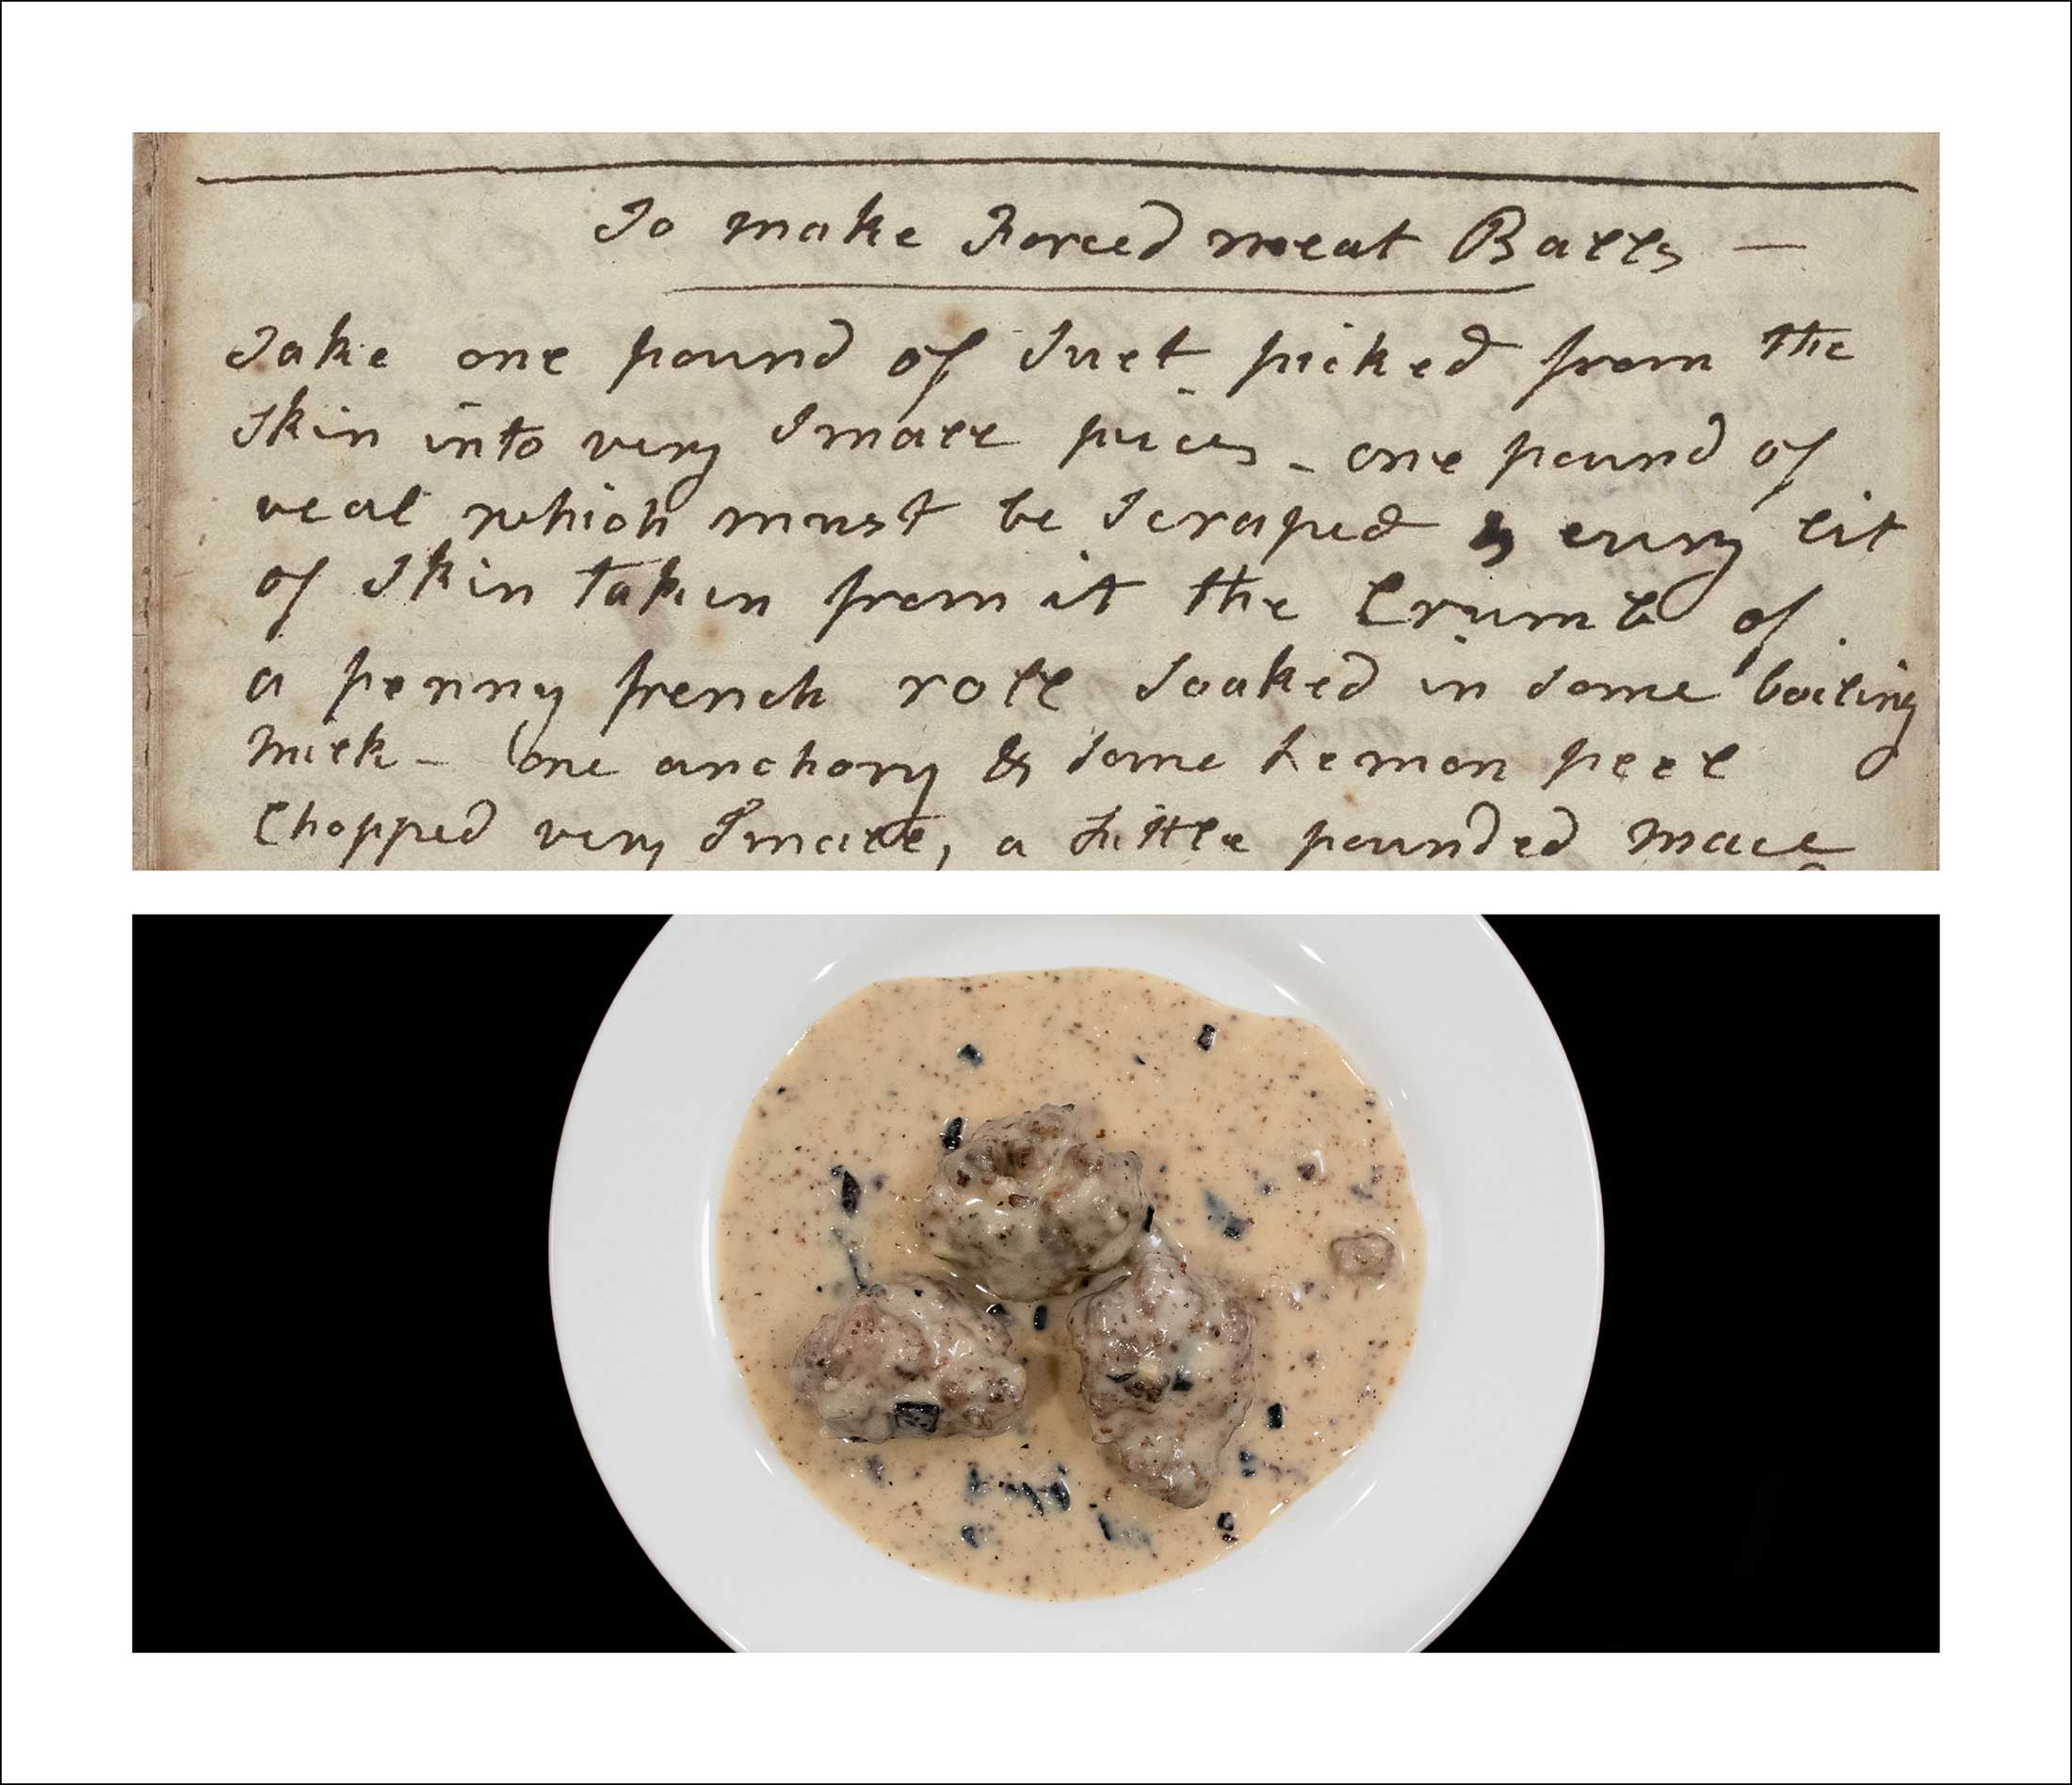 A bowl of food positioned beneath a historical document